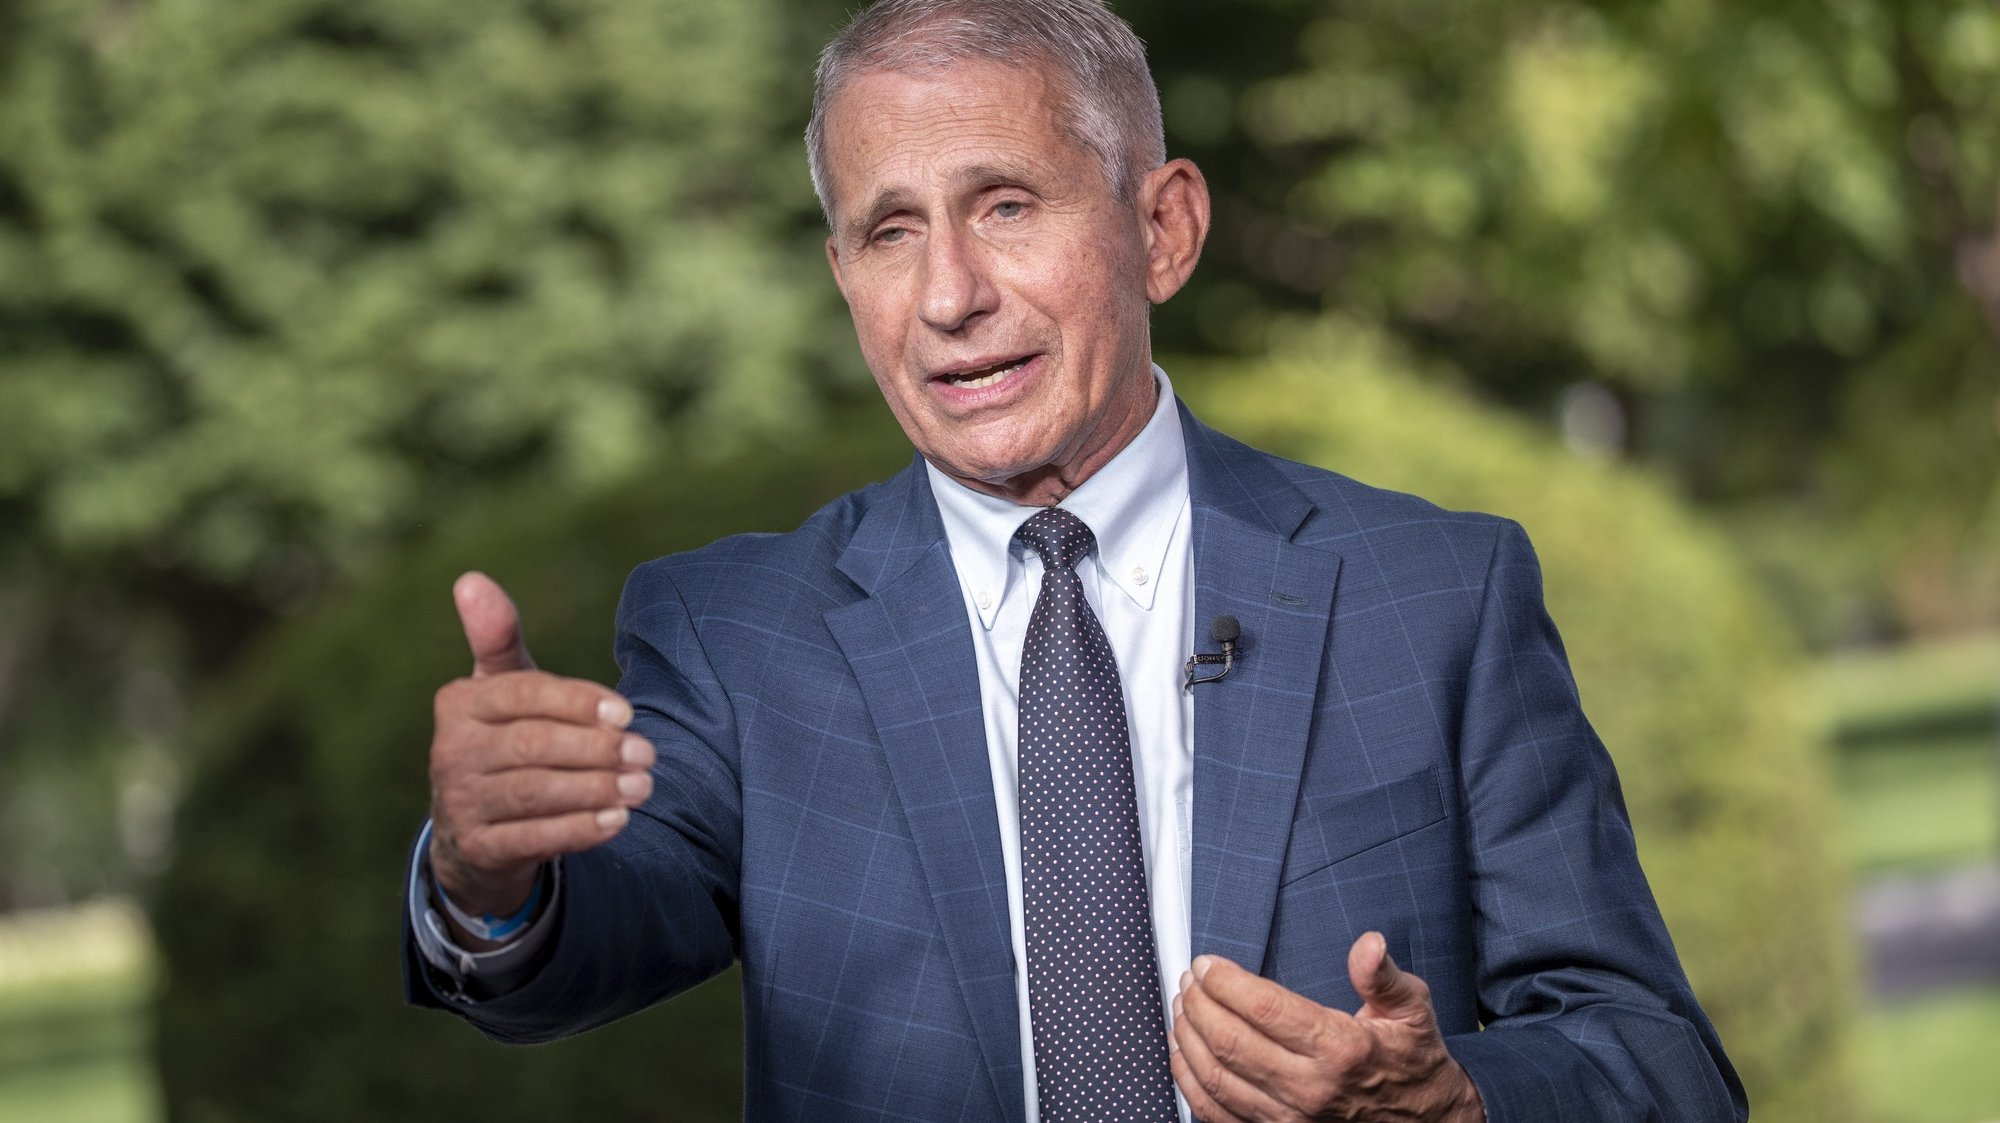 epa09419588 Anthony Fauci, director of the US National Institute of Allergy and Infectious Diseases (NIAID) participates in a television interview at the White House in Washington, DC, USA, 18 August 2021. President Biden said top federal health officials recommend that all Americans get a booster shot eight months after becoming fully vaccinated against COVID-19.  EPA/SHAWN THEW